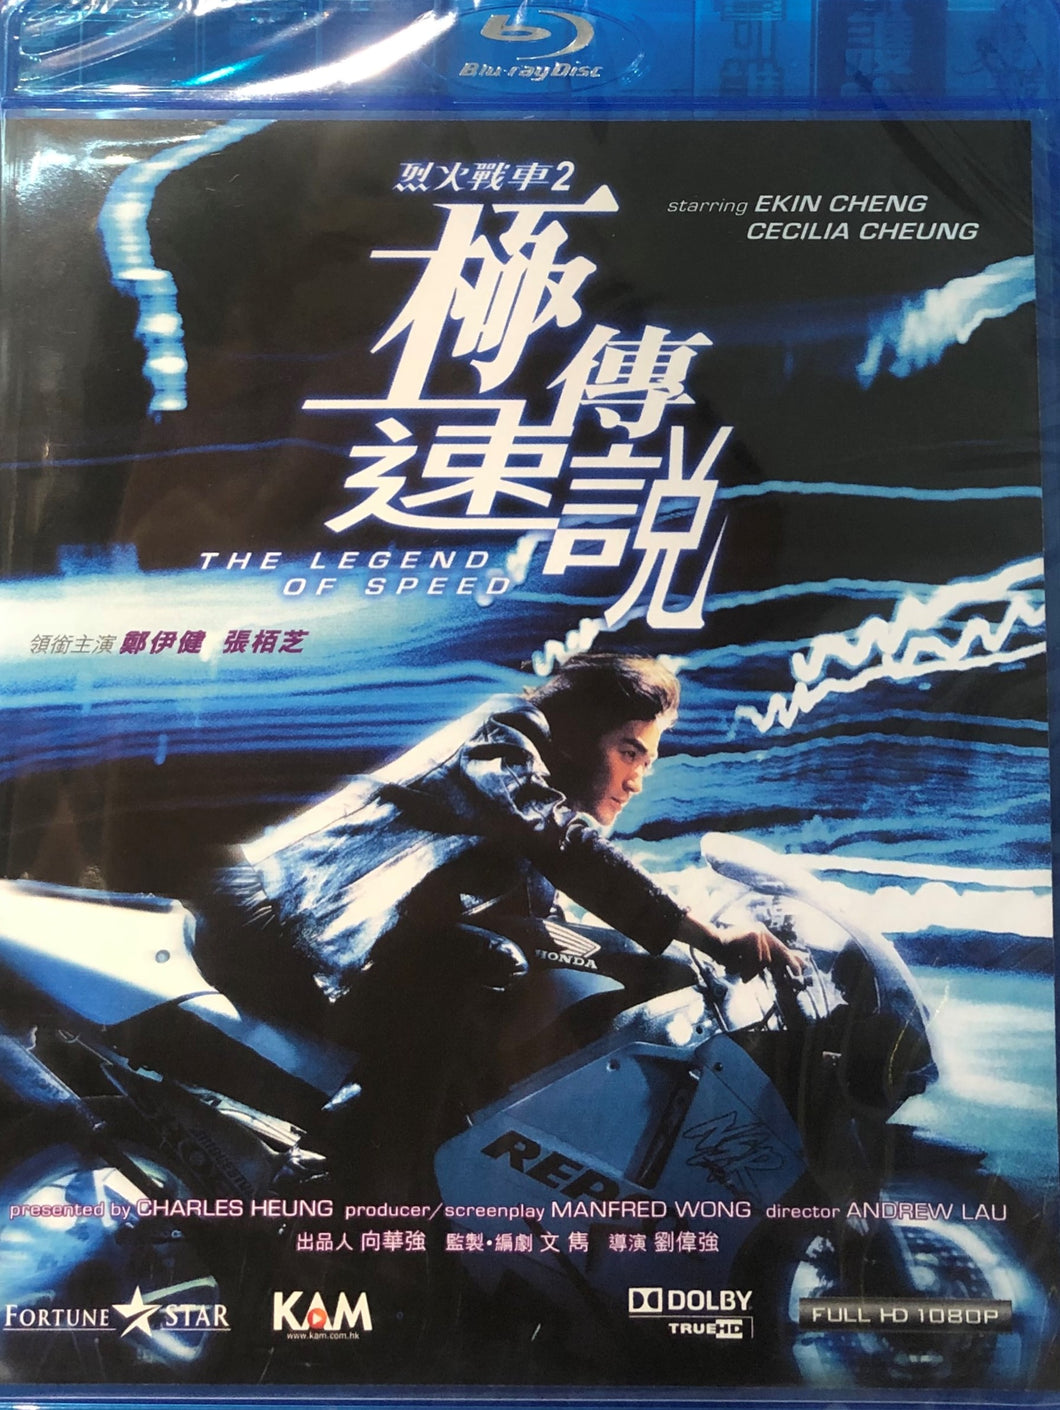 The Legend of Speed 烈火戰車2極速傳說 1999 (Hong Kong Movie) BLU-RAY with English Subtitles (Region A)